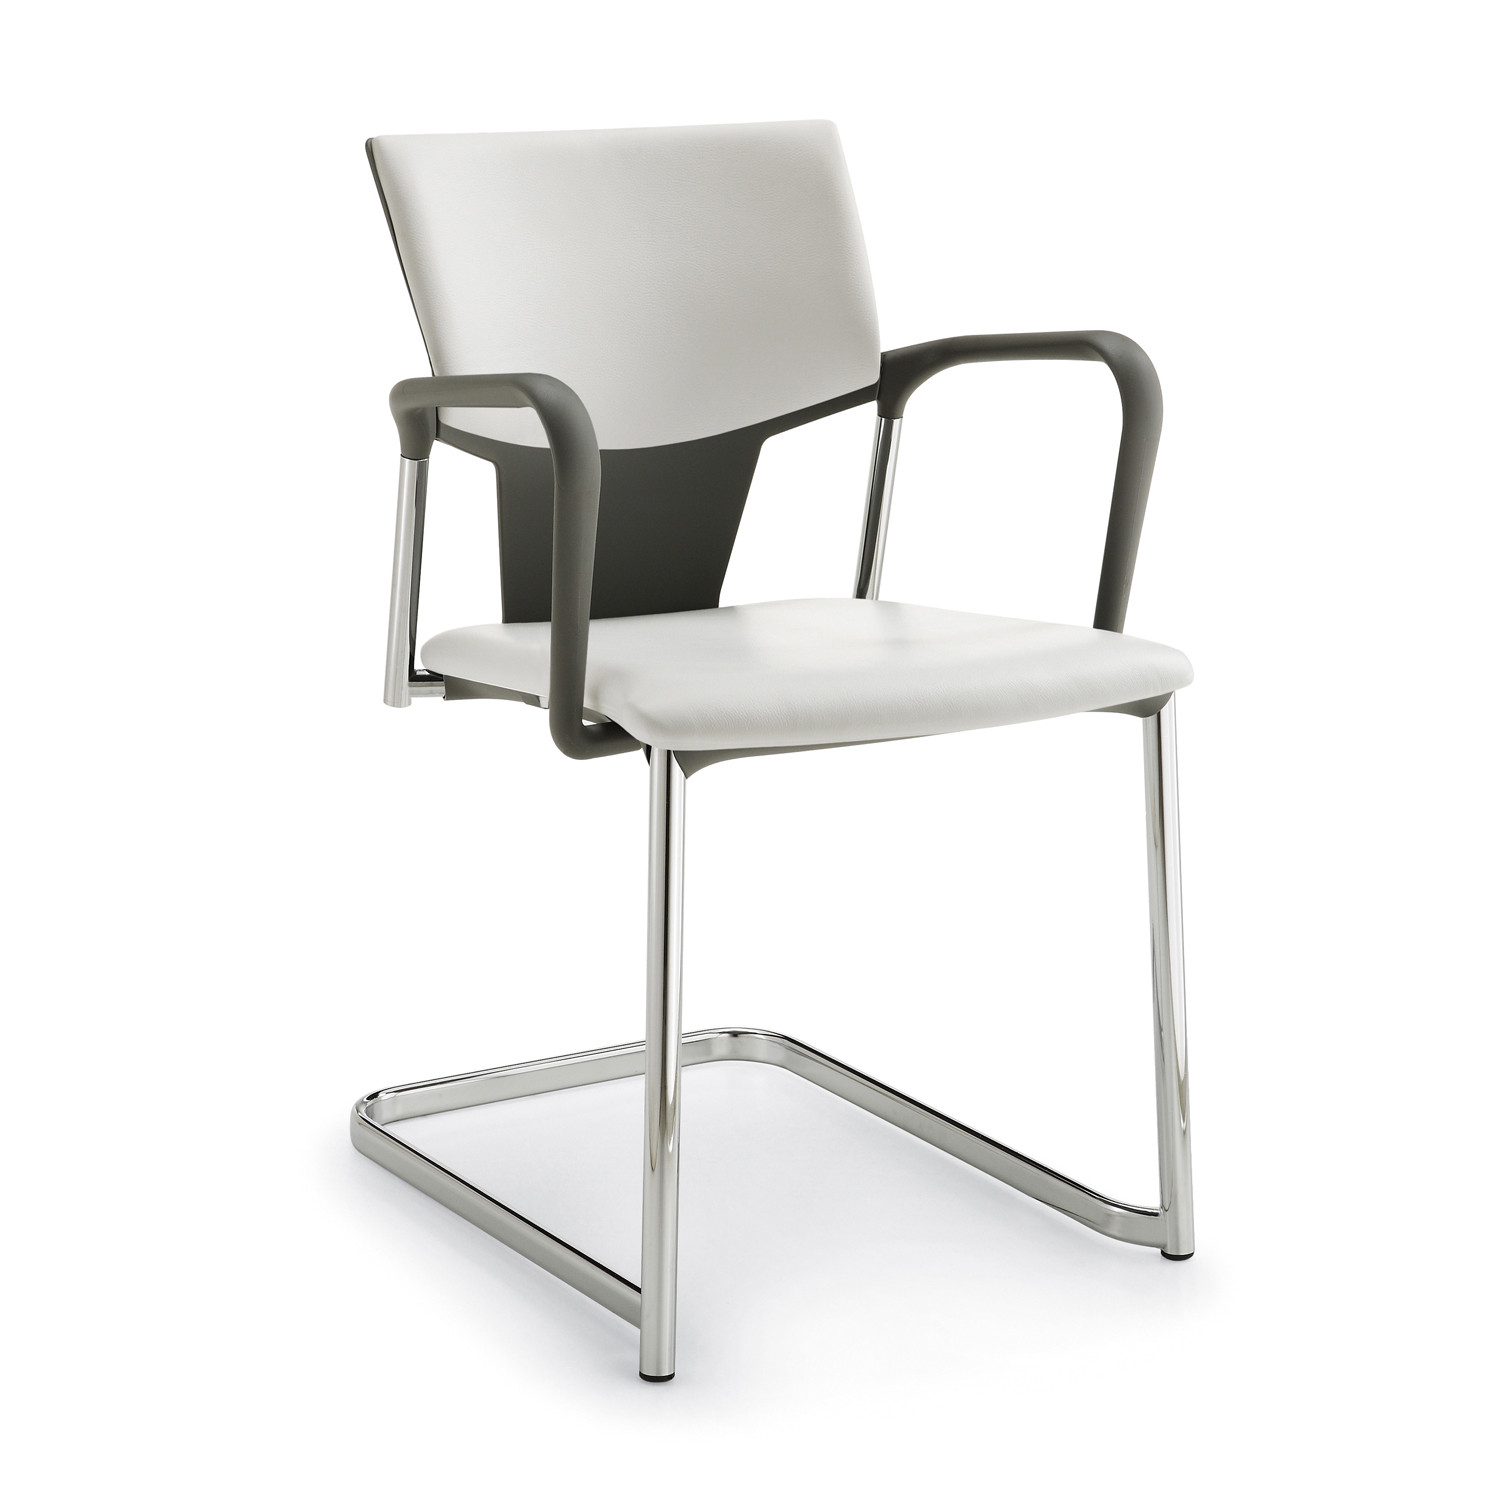 Ikon Chairs by Pledge ...  sc 1 st  Apres Furniture & Ikon Chair | Training Chair Ikon - Apres Office Furniture